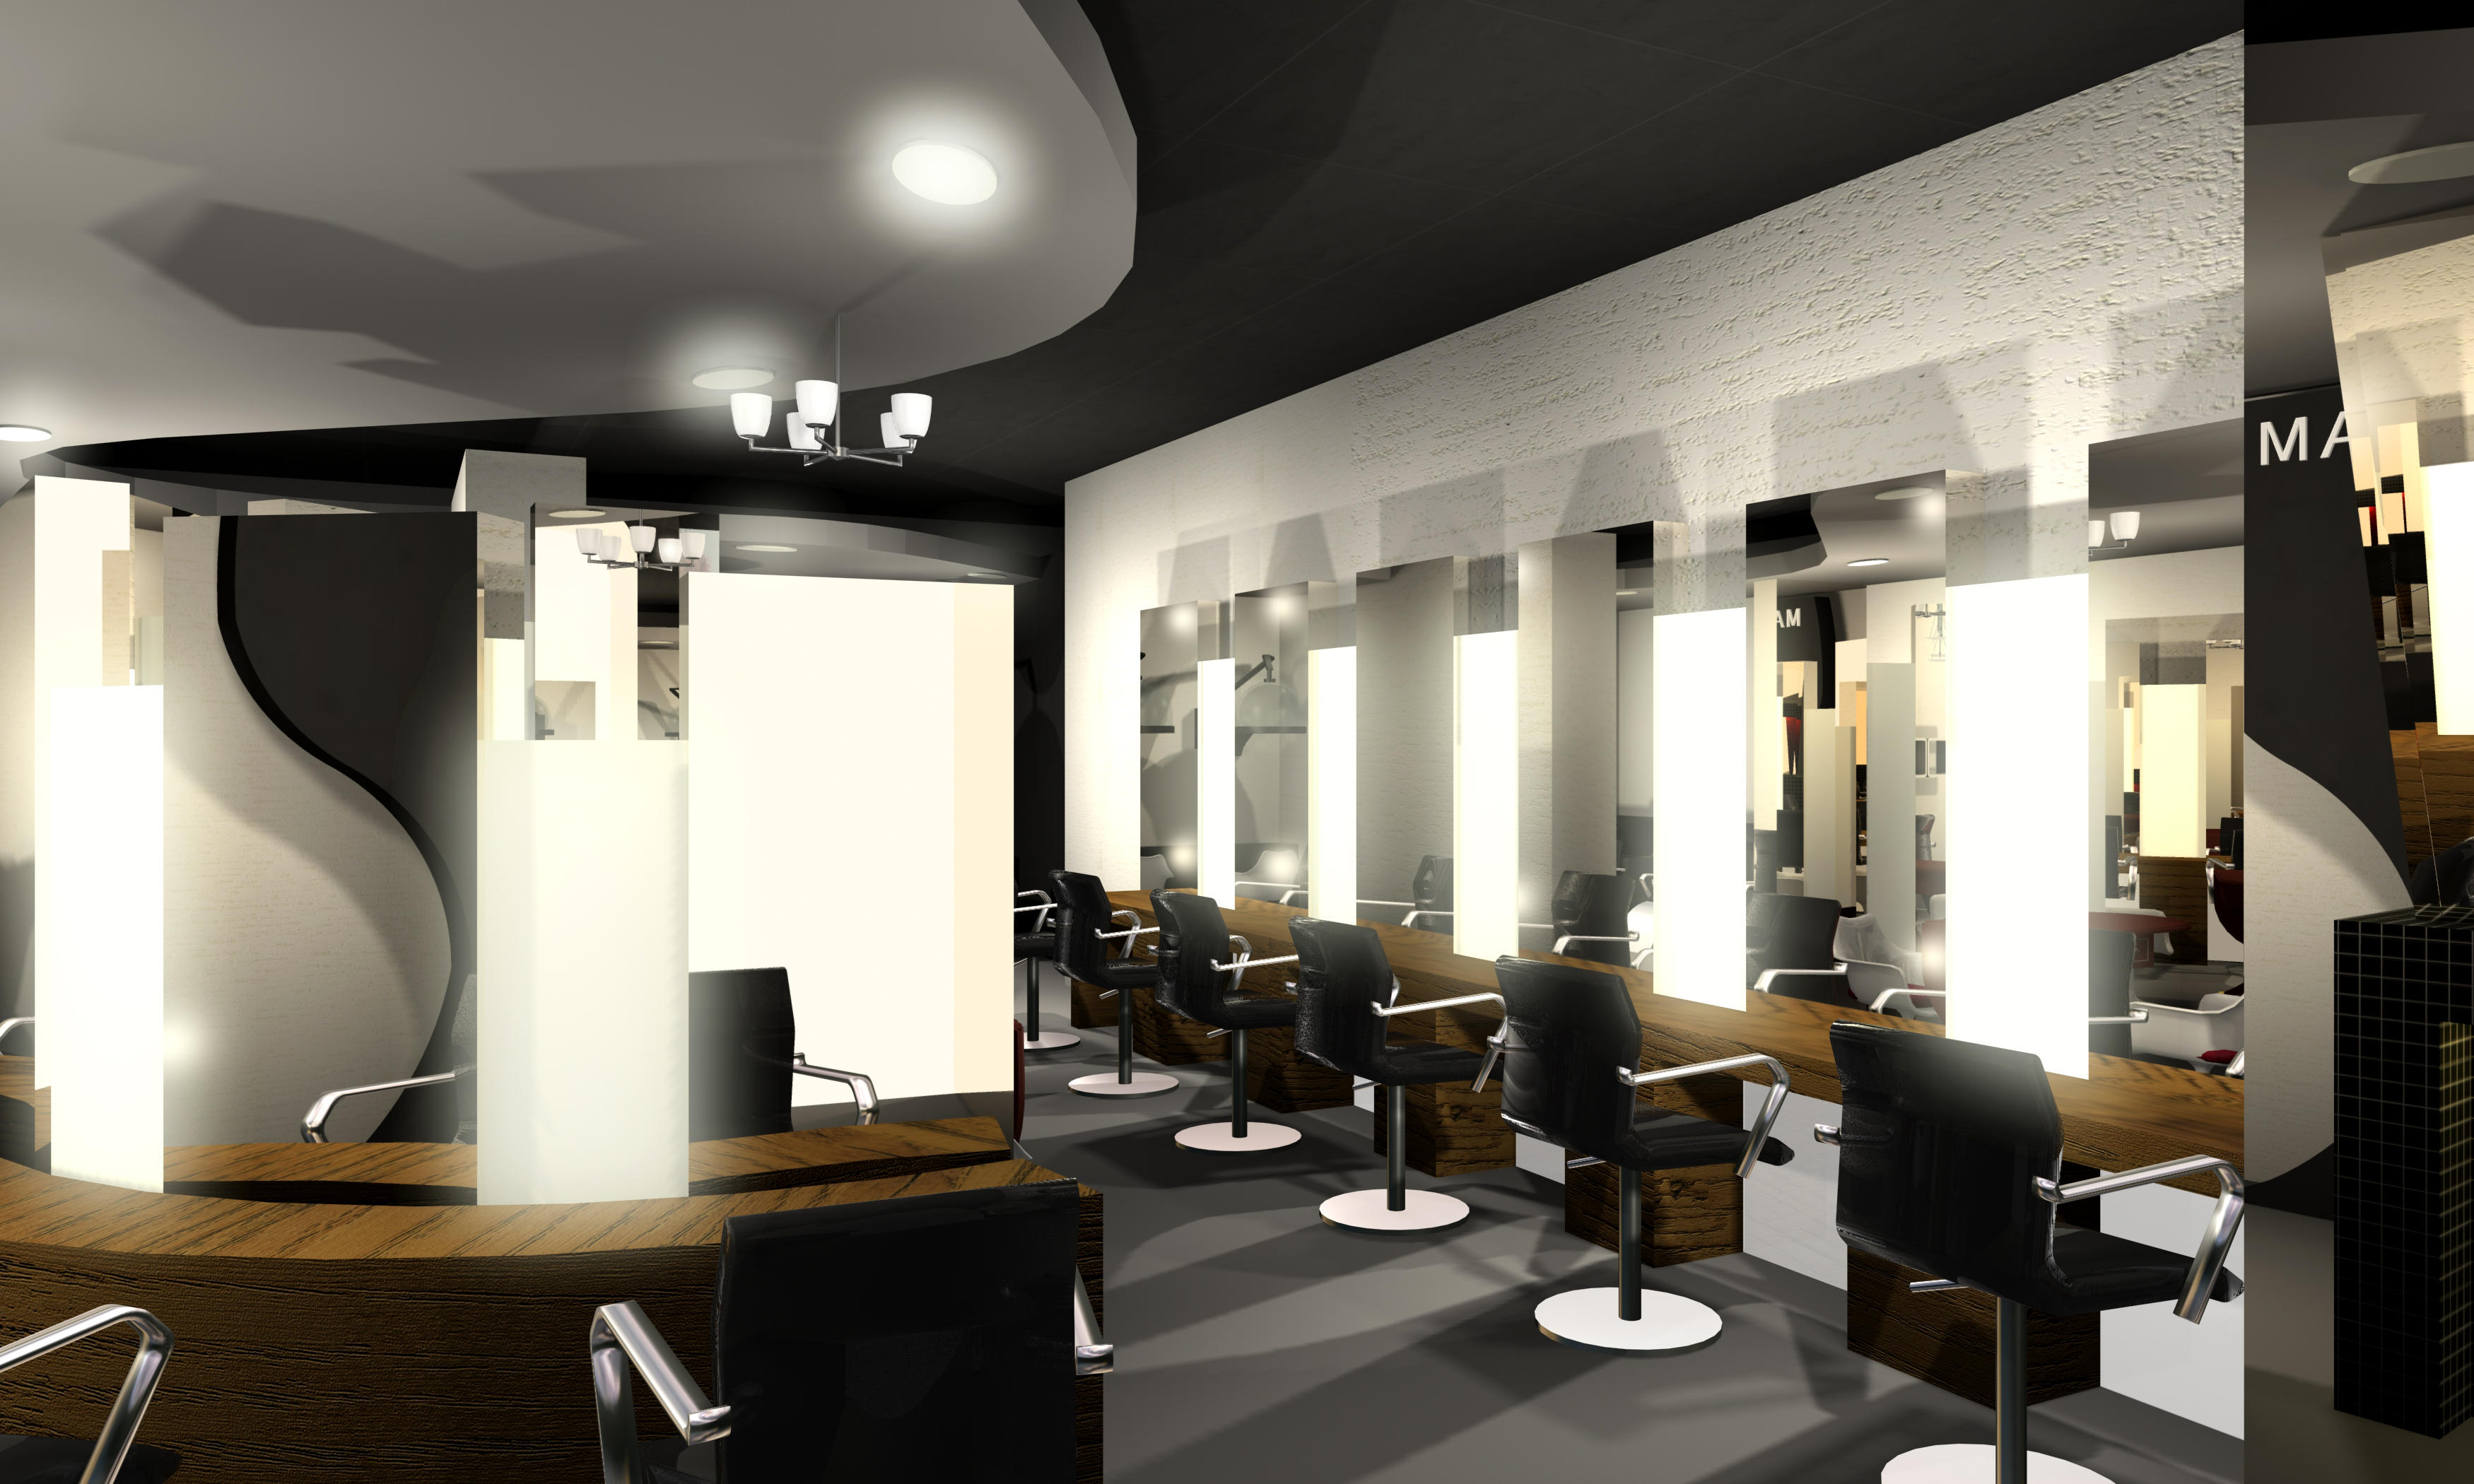 Interior view of salon by jianzwindz on deviantart for A step ahead salon